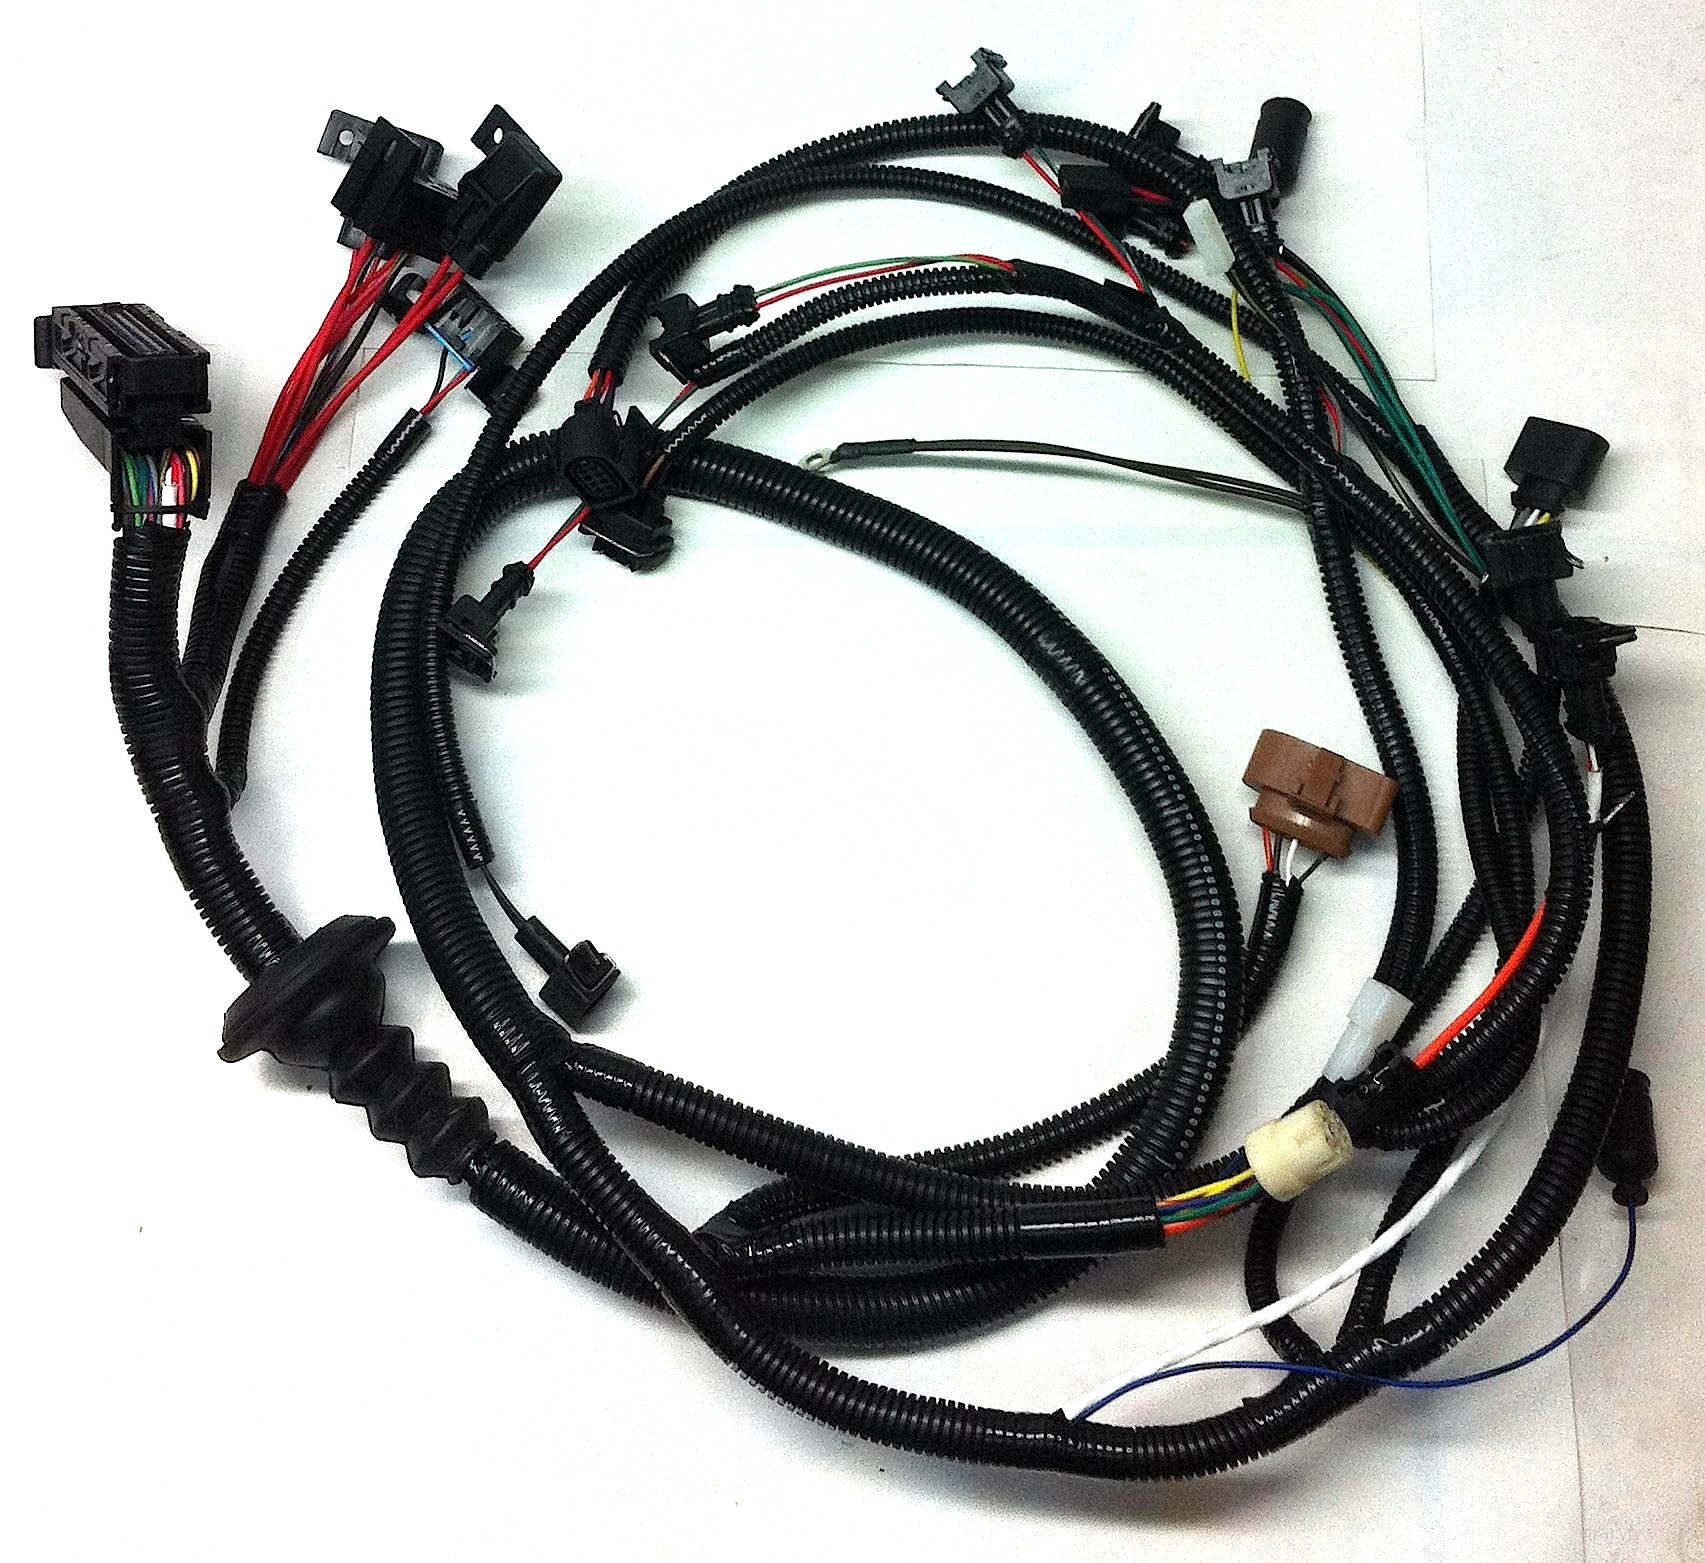 Wiring_Harness_2LR 2lr tiico conversion wiring harness foreign auto & supply, inc tdi swap wiring harness at webbmarketing.co